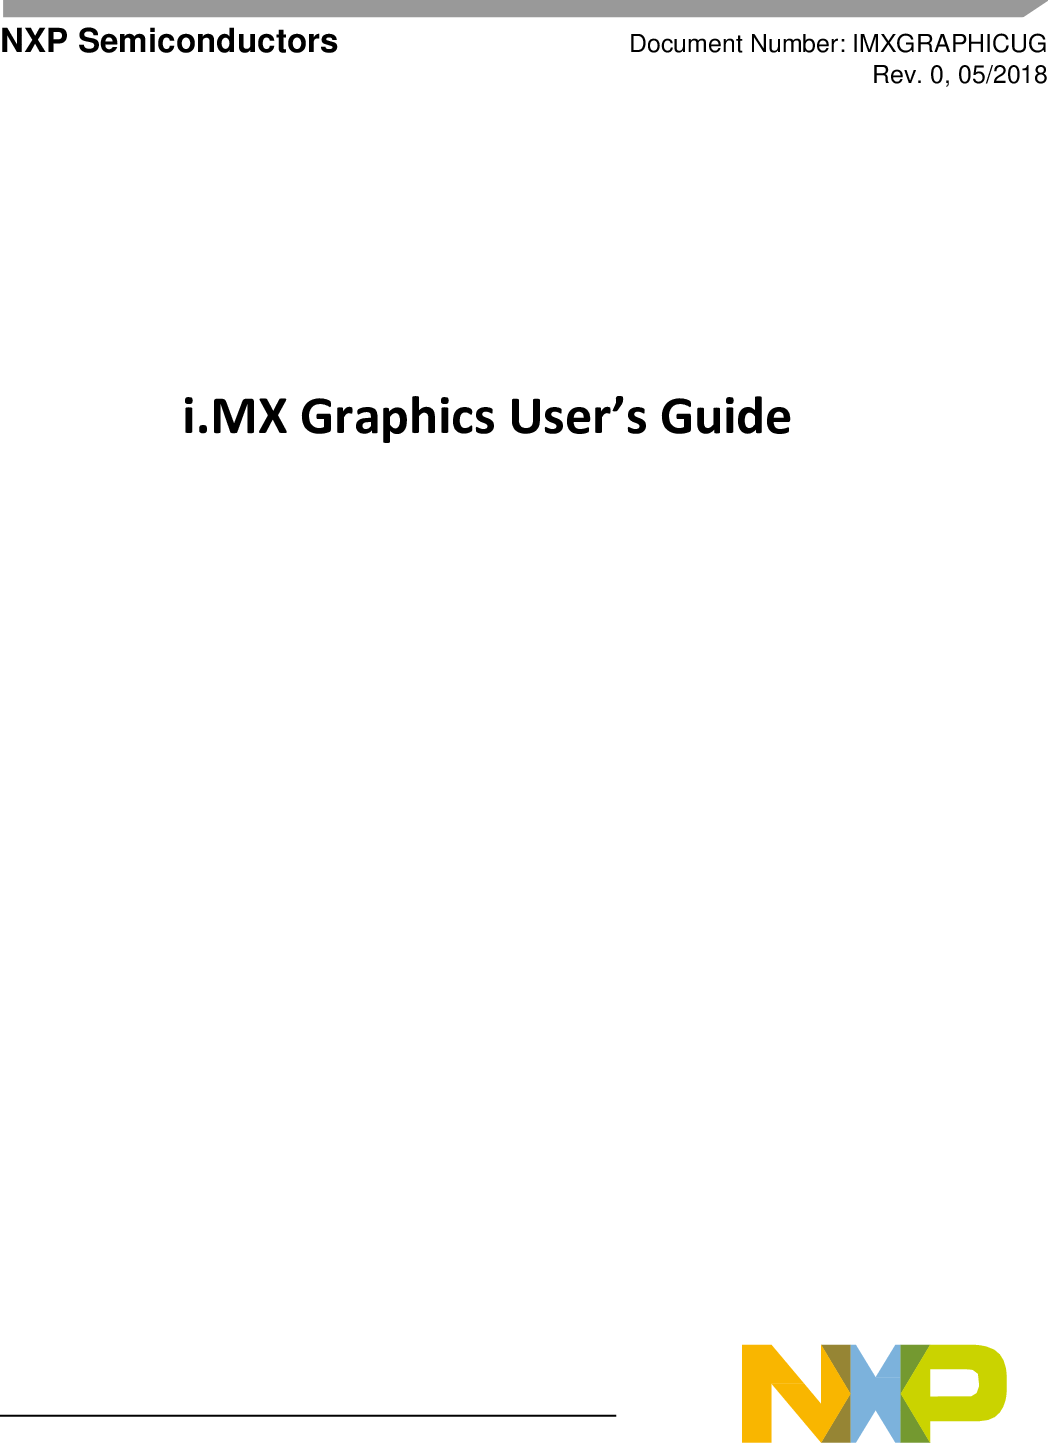 I MX Graphics User's Guide User's